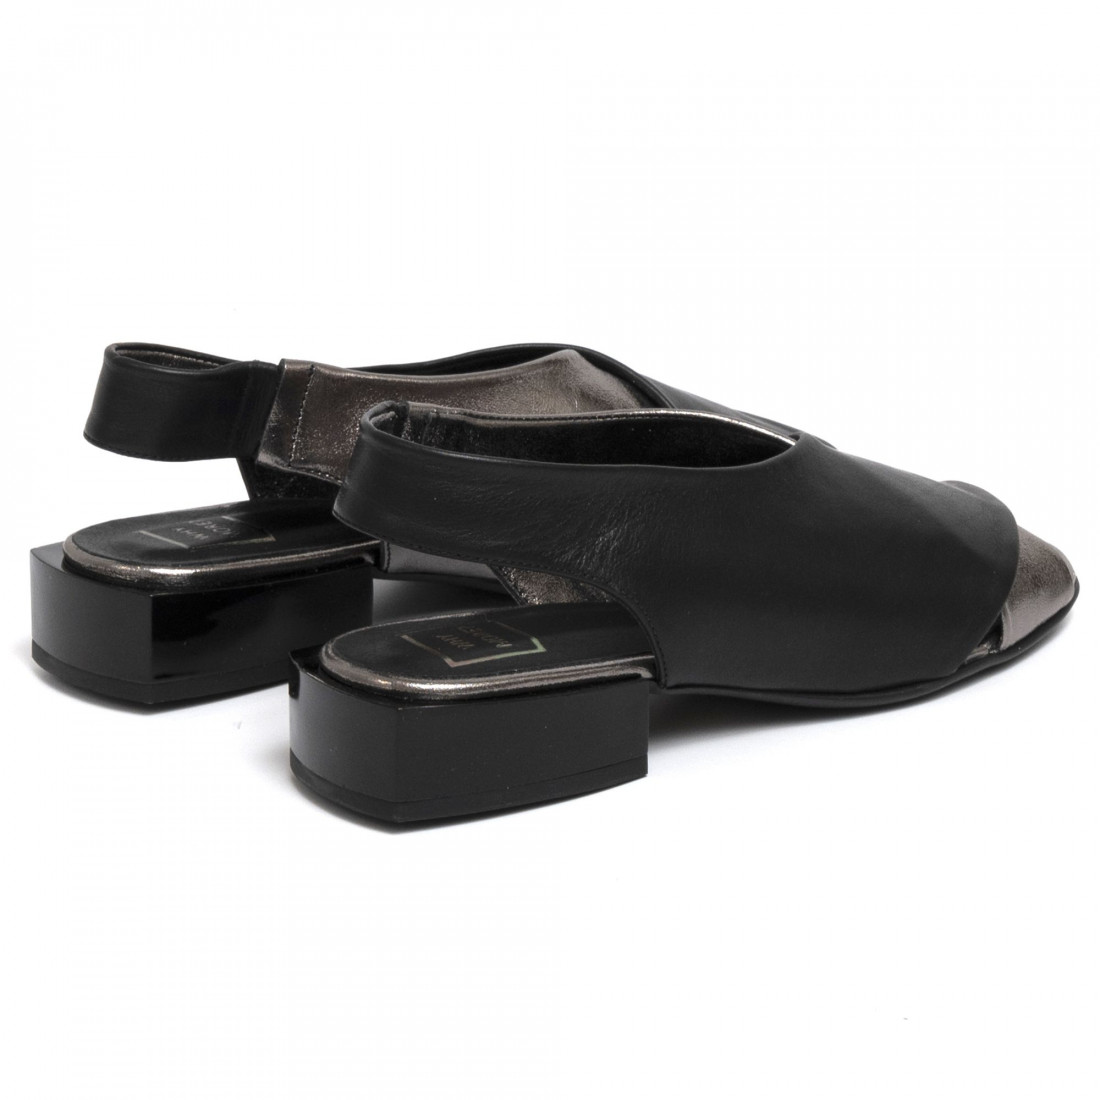 sandals woman why more 9113929 187 7283